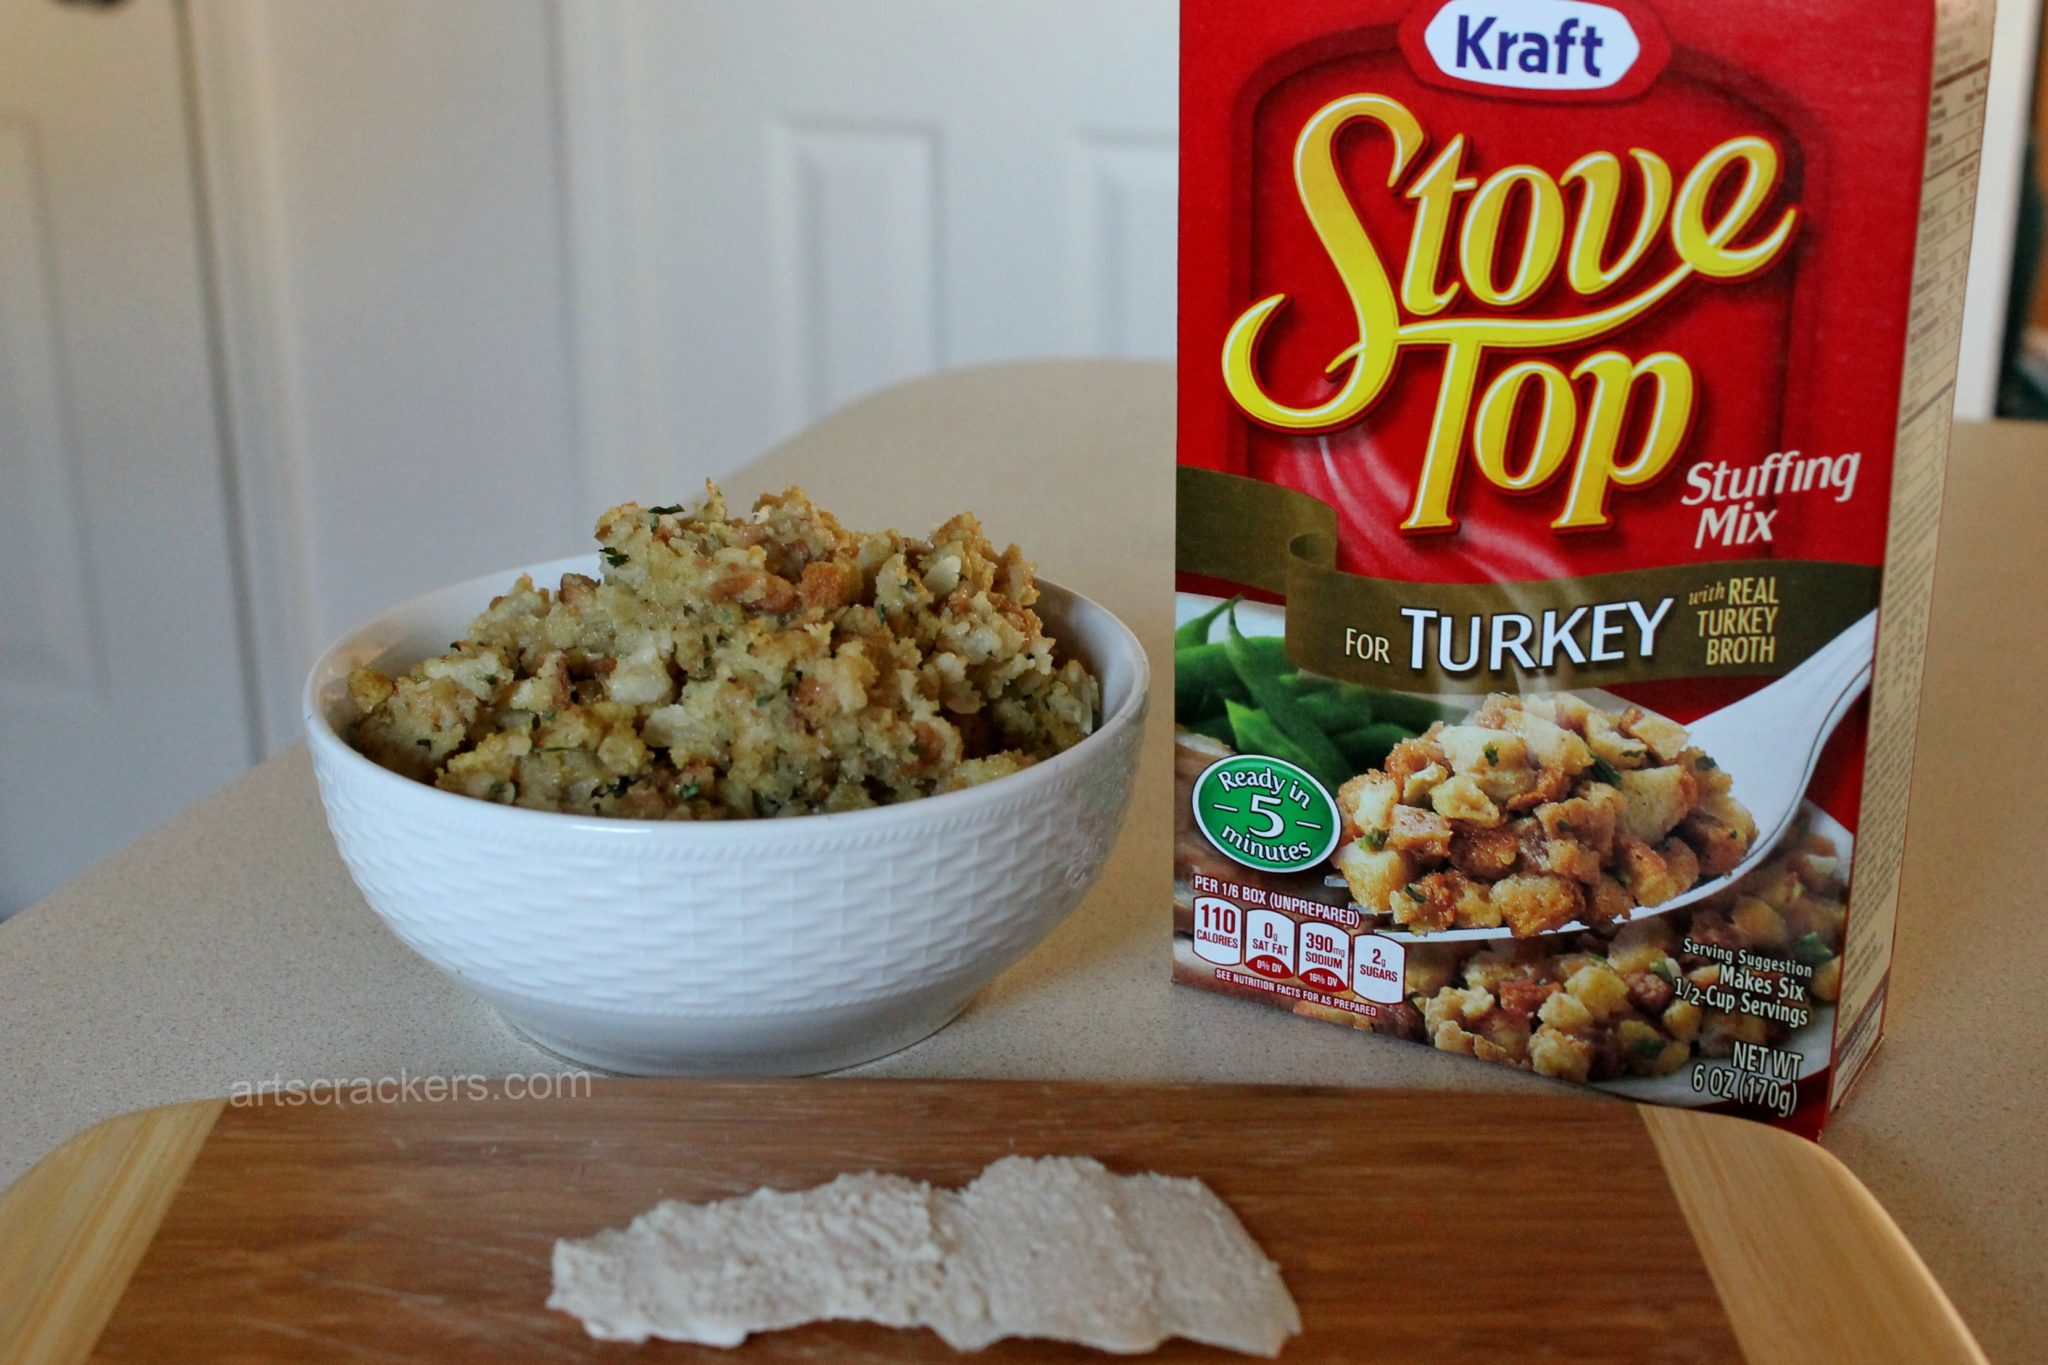 Kraft Stove Top Stuffing Turkey